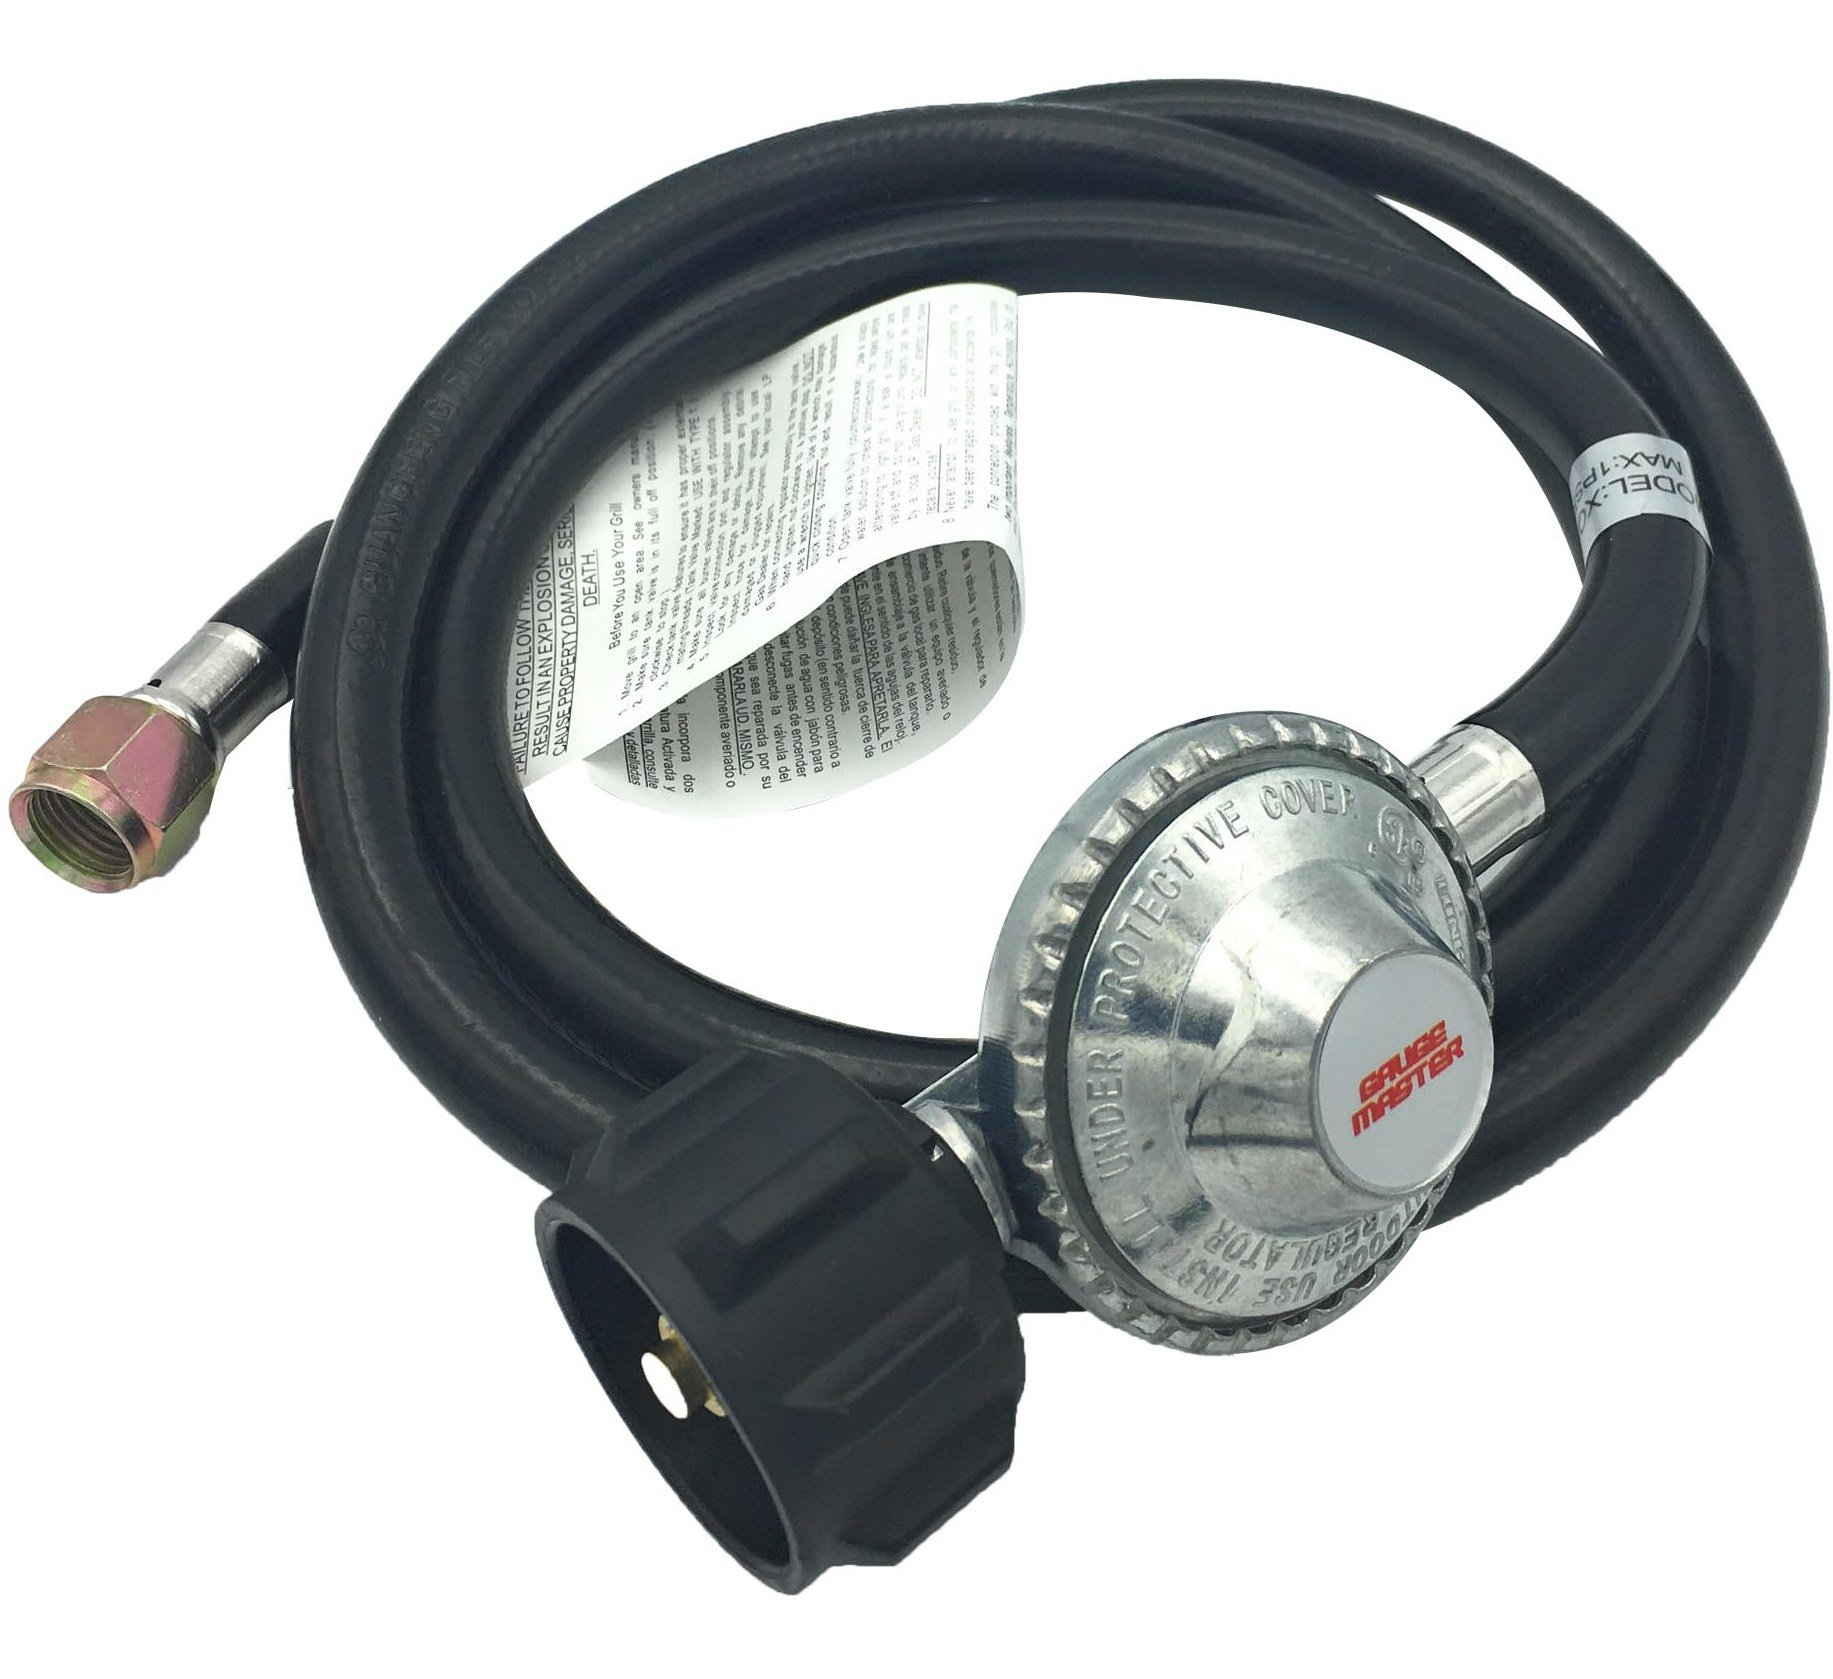 Gauge Master Premium 5 Foot Universal QCC1 Low Pressure LP Propane Regulator - BBQ Grill Replacement hose fits Most LP Gas Grills, Heaters and Fire Pit Table - 3/8'' Female Flare Nut (5 Feet)